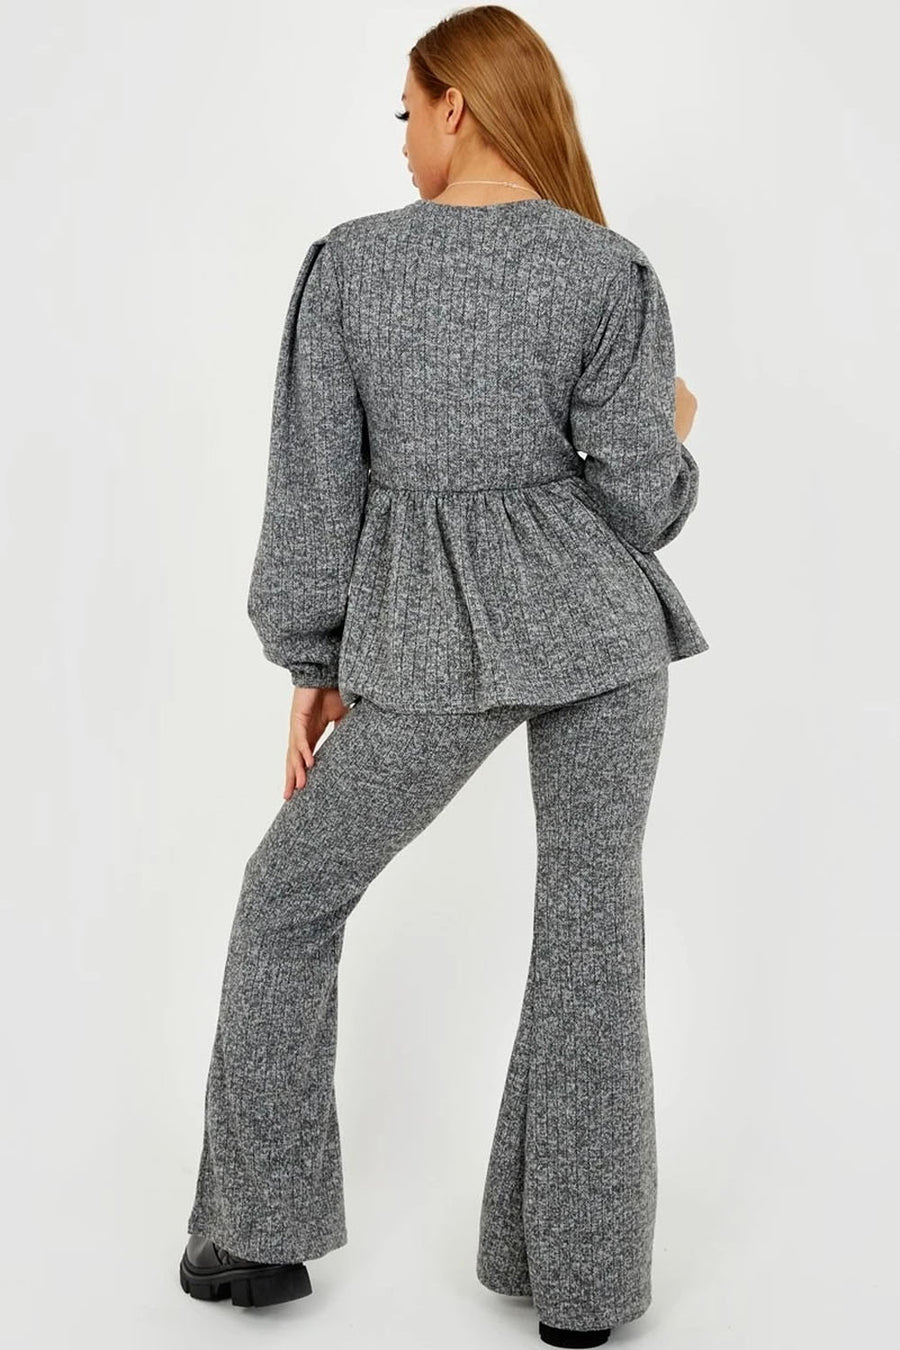 Grey Knitted Frill Hem Top & Bell Bottom Pants Co-ord - Daphne